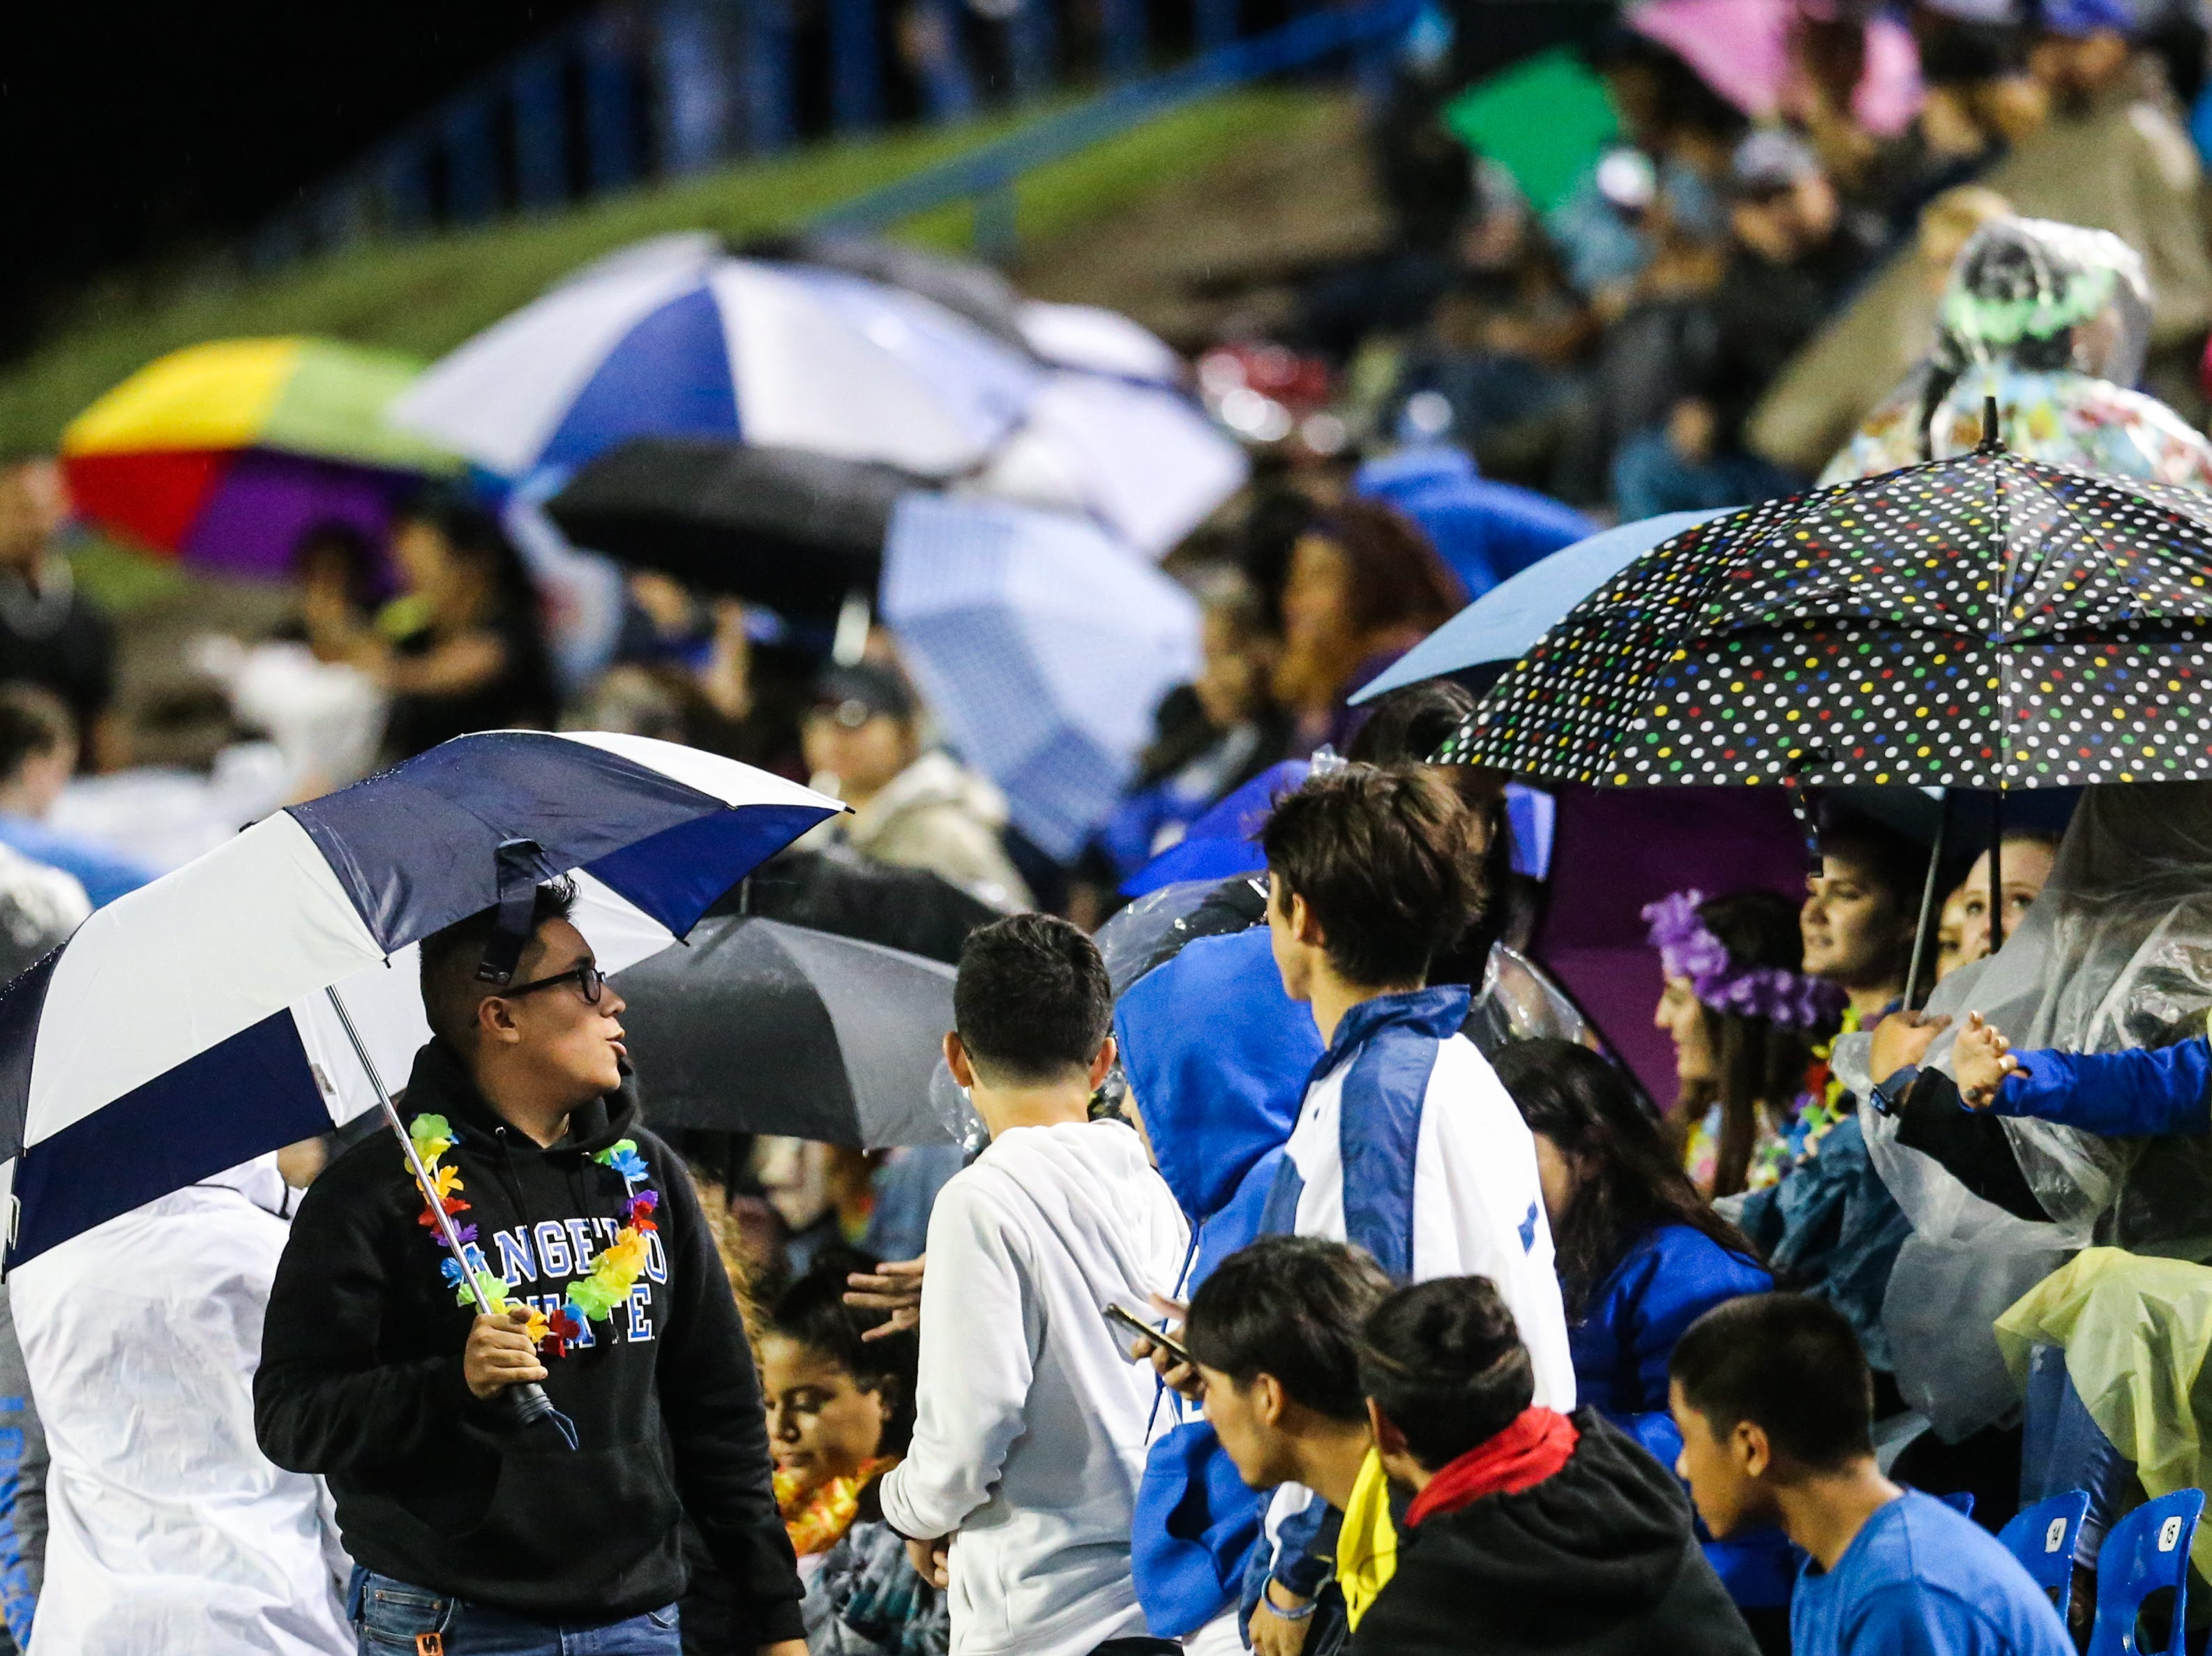 Lake View's fans open up their umbrellas against the rain  during the game against Fabens Friday, Sept. 7, 2018, at San Angelo Stadium.